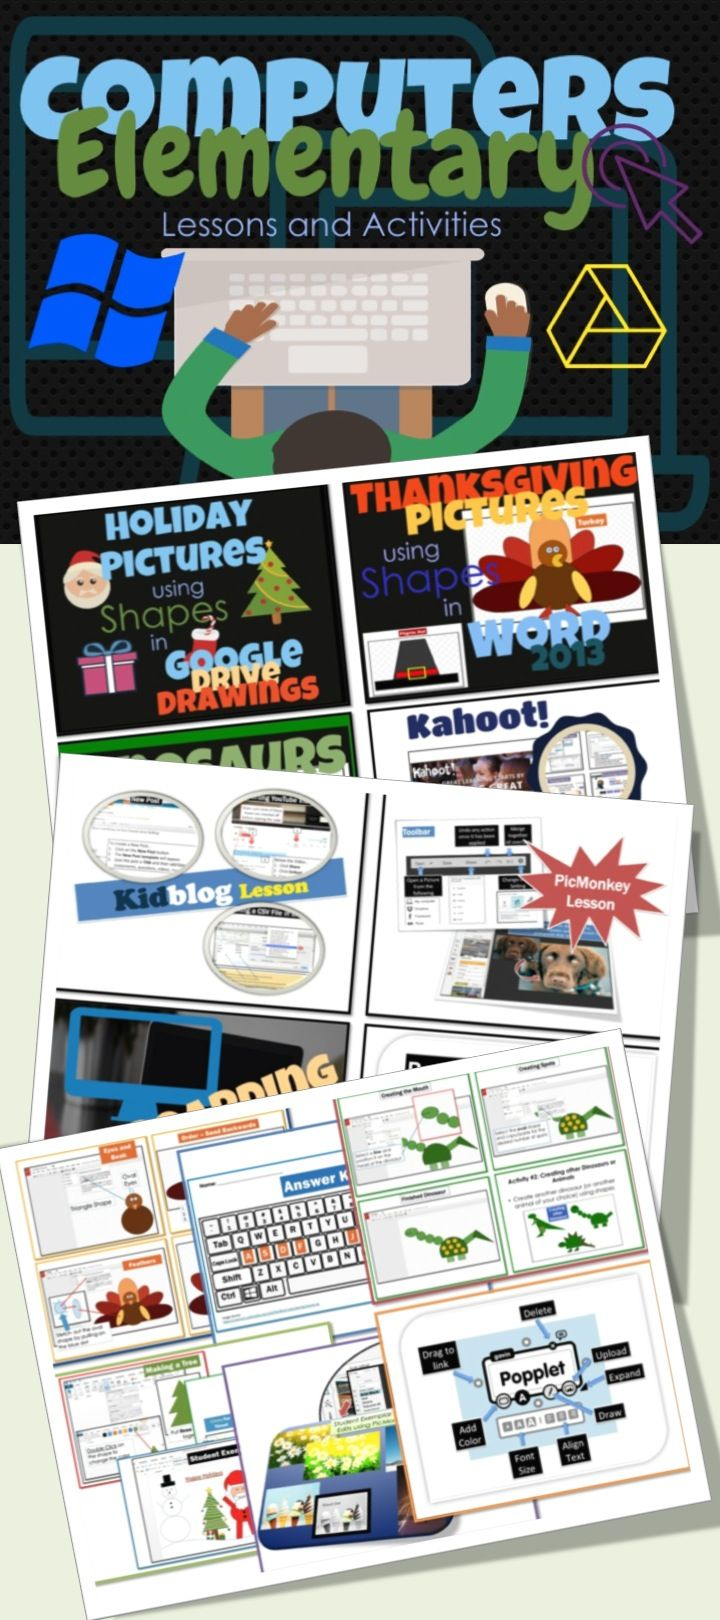 •	This is a bundle of activities for Elementary Students using a variety of programs including Microsoft Office, Google Drive and other free online software. •	Screen shots and easy to follow instruction bubbles are used to guide students through the activities.